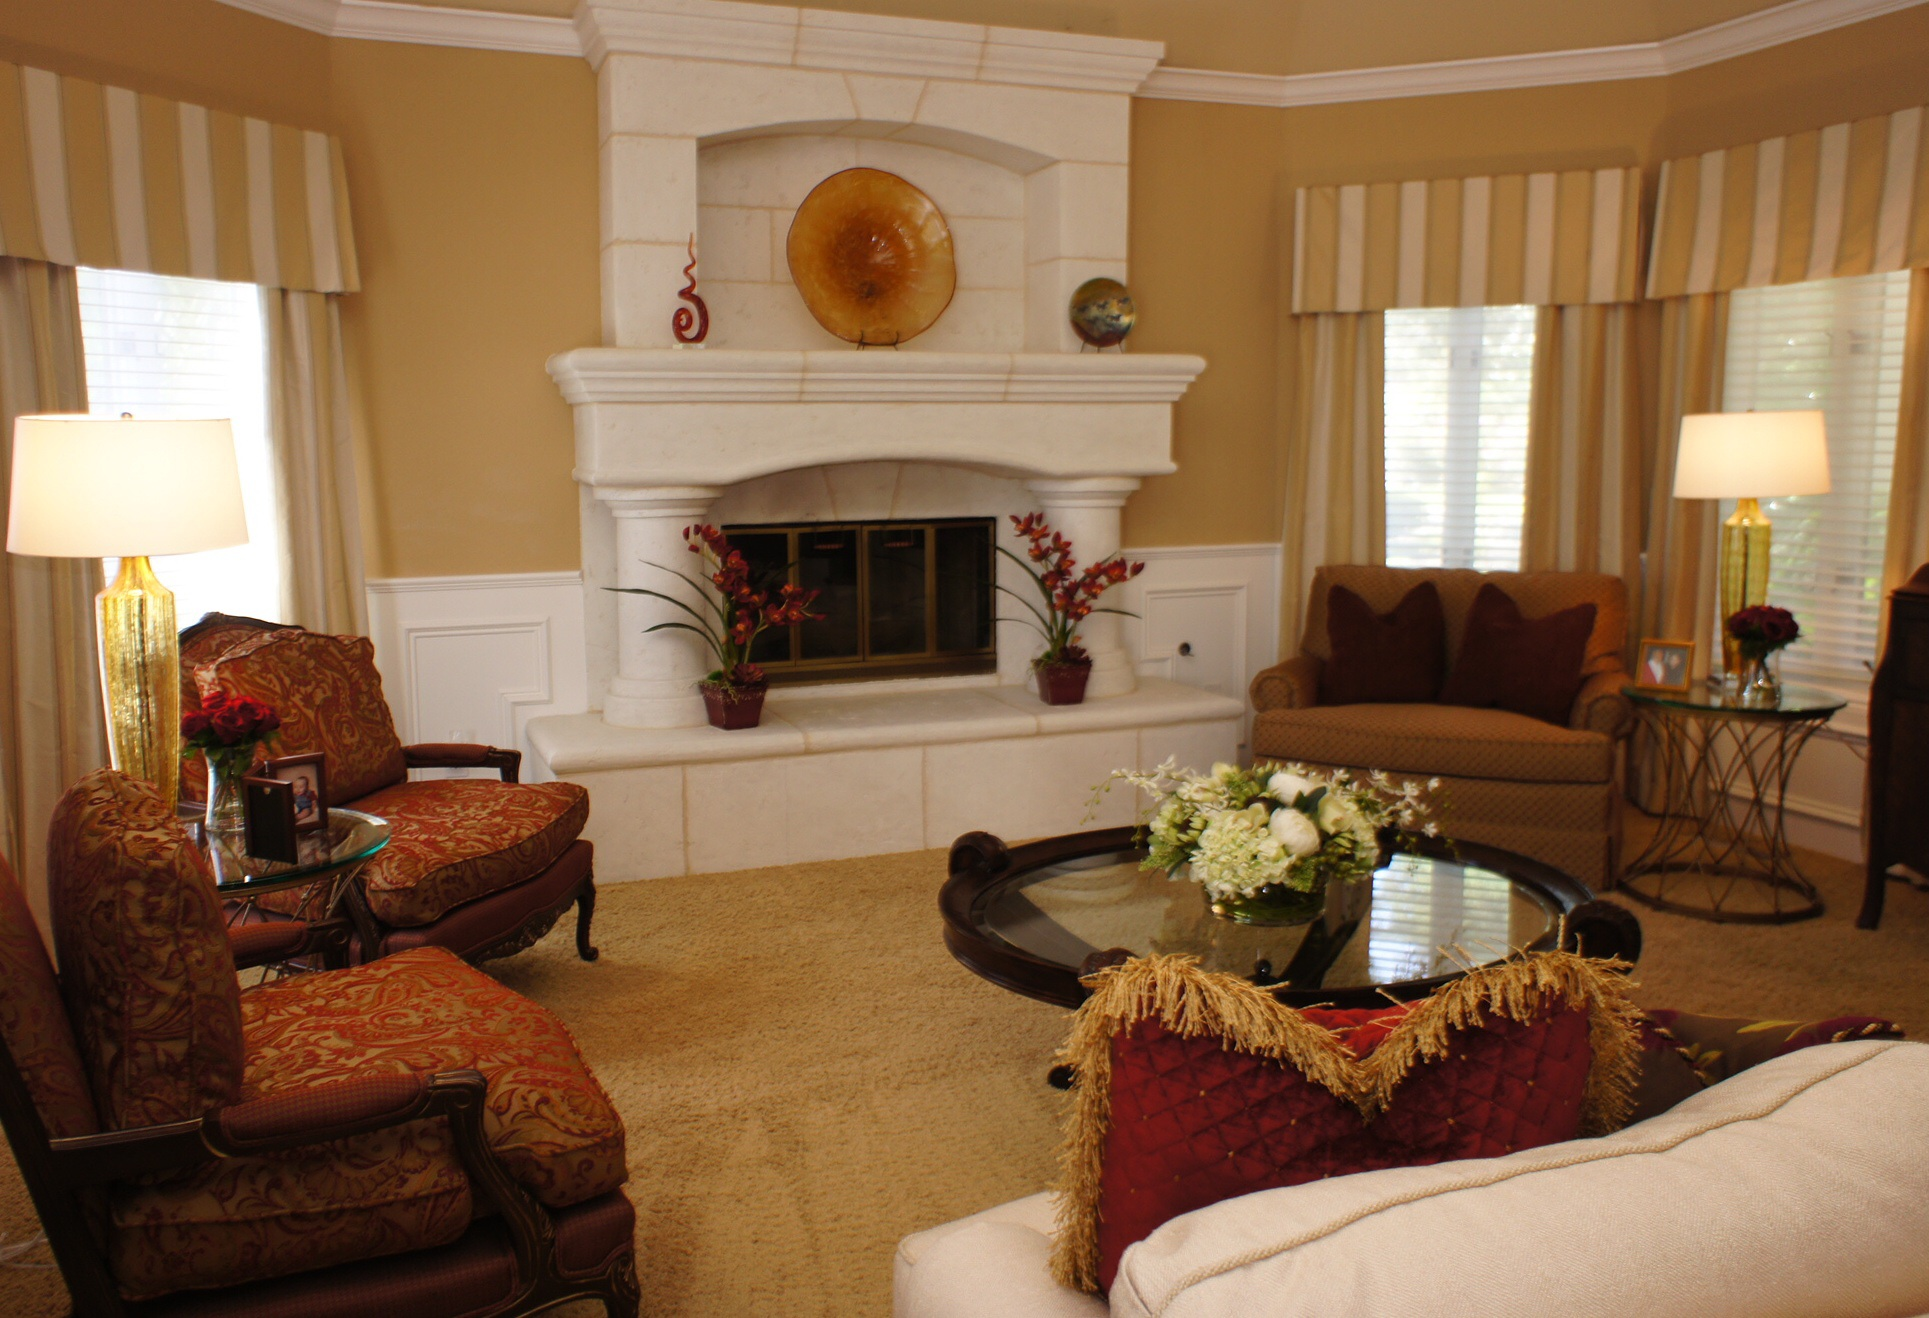 Countrywood Interiors | Walnut Creek Interior Design and Furniture ...